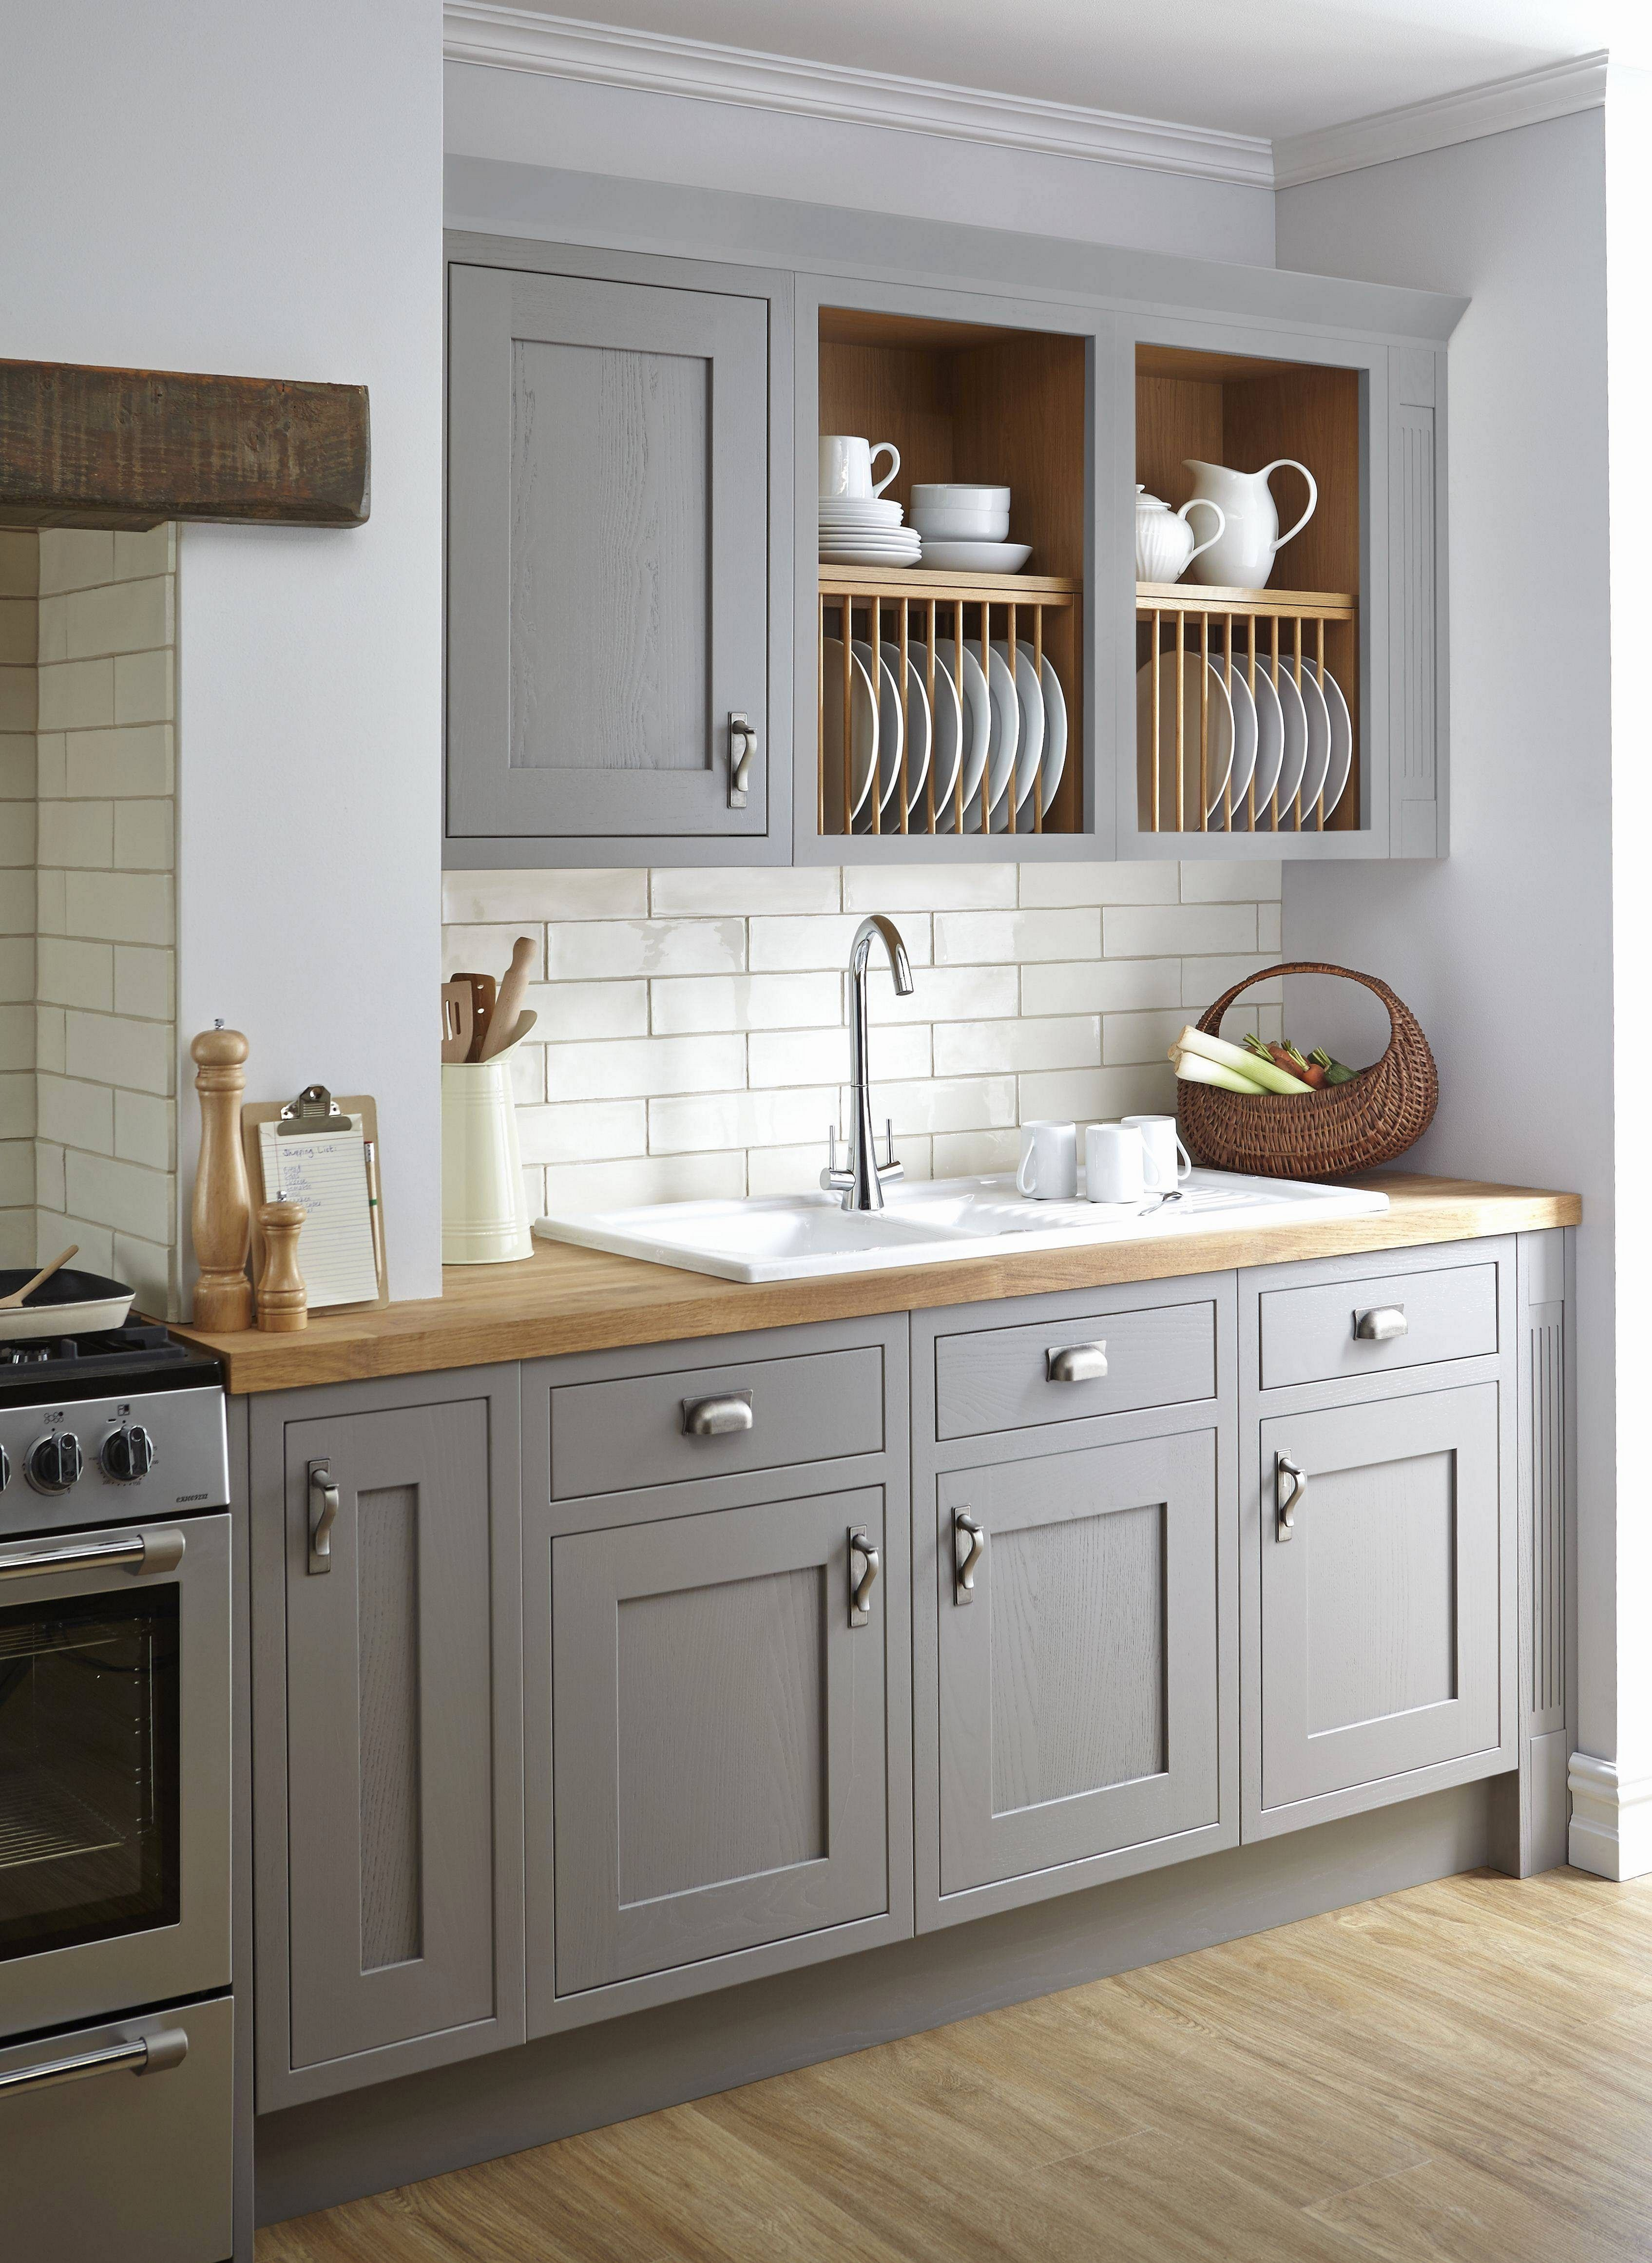 7 Amazing Kitchen Designs That You Need to Know